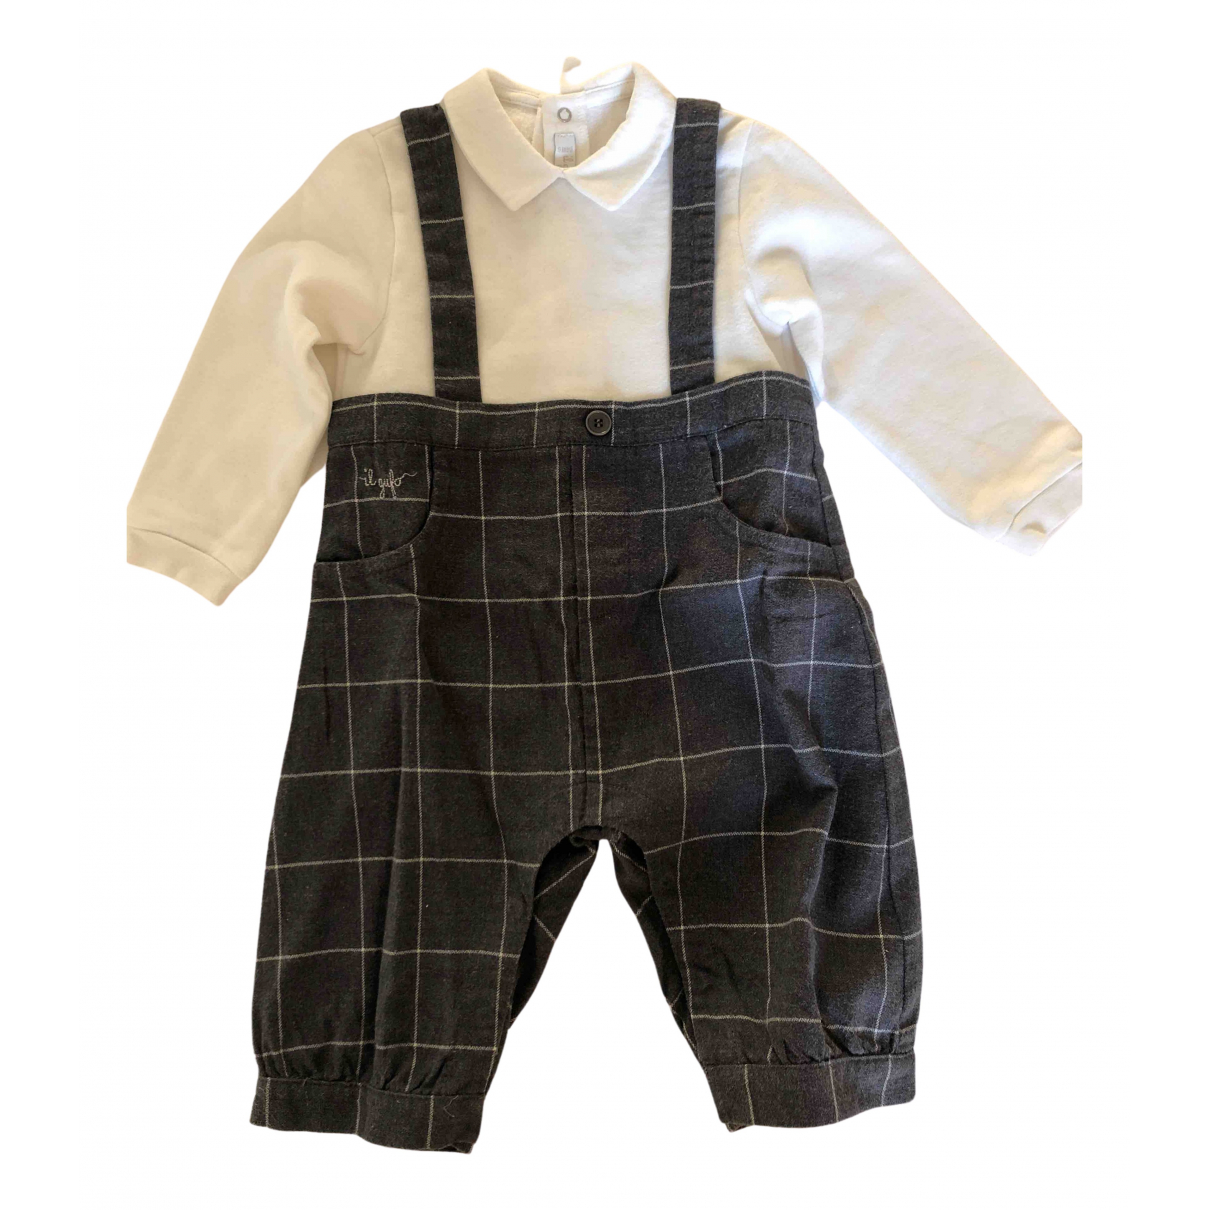 Il Gufo \N Grey Cotton Outfits for Kids 9 months - up to 71cm FR